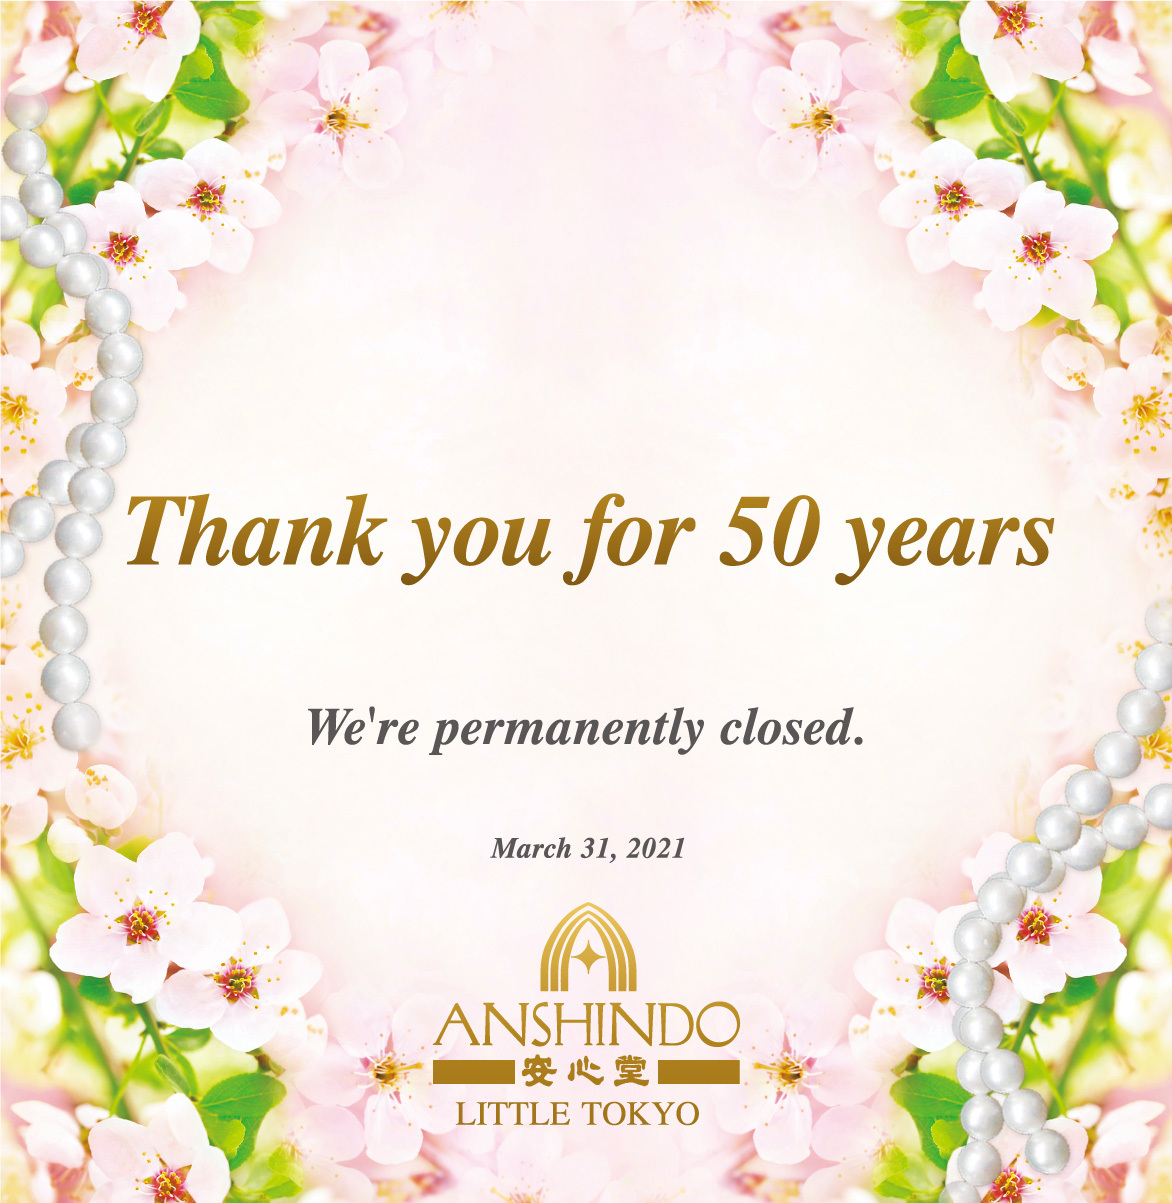 Thank you for 50 years. We're permanently closed.